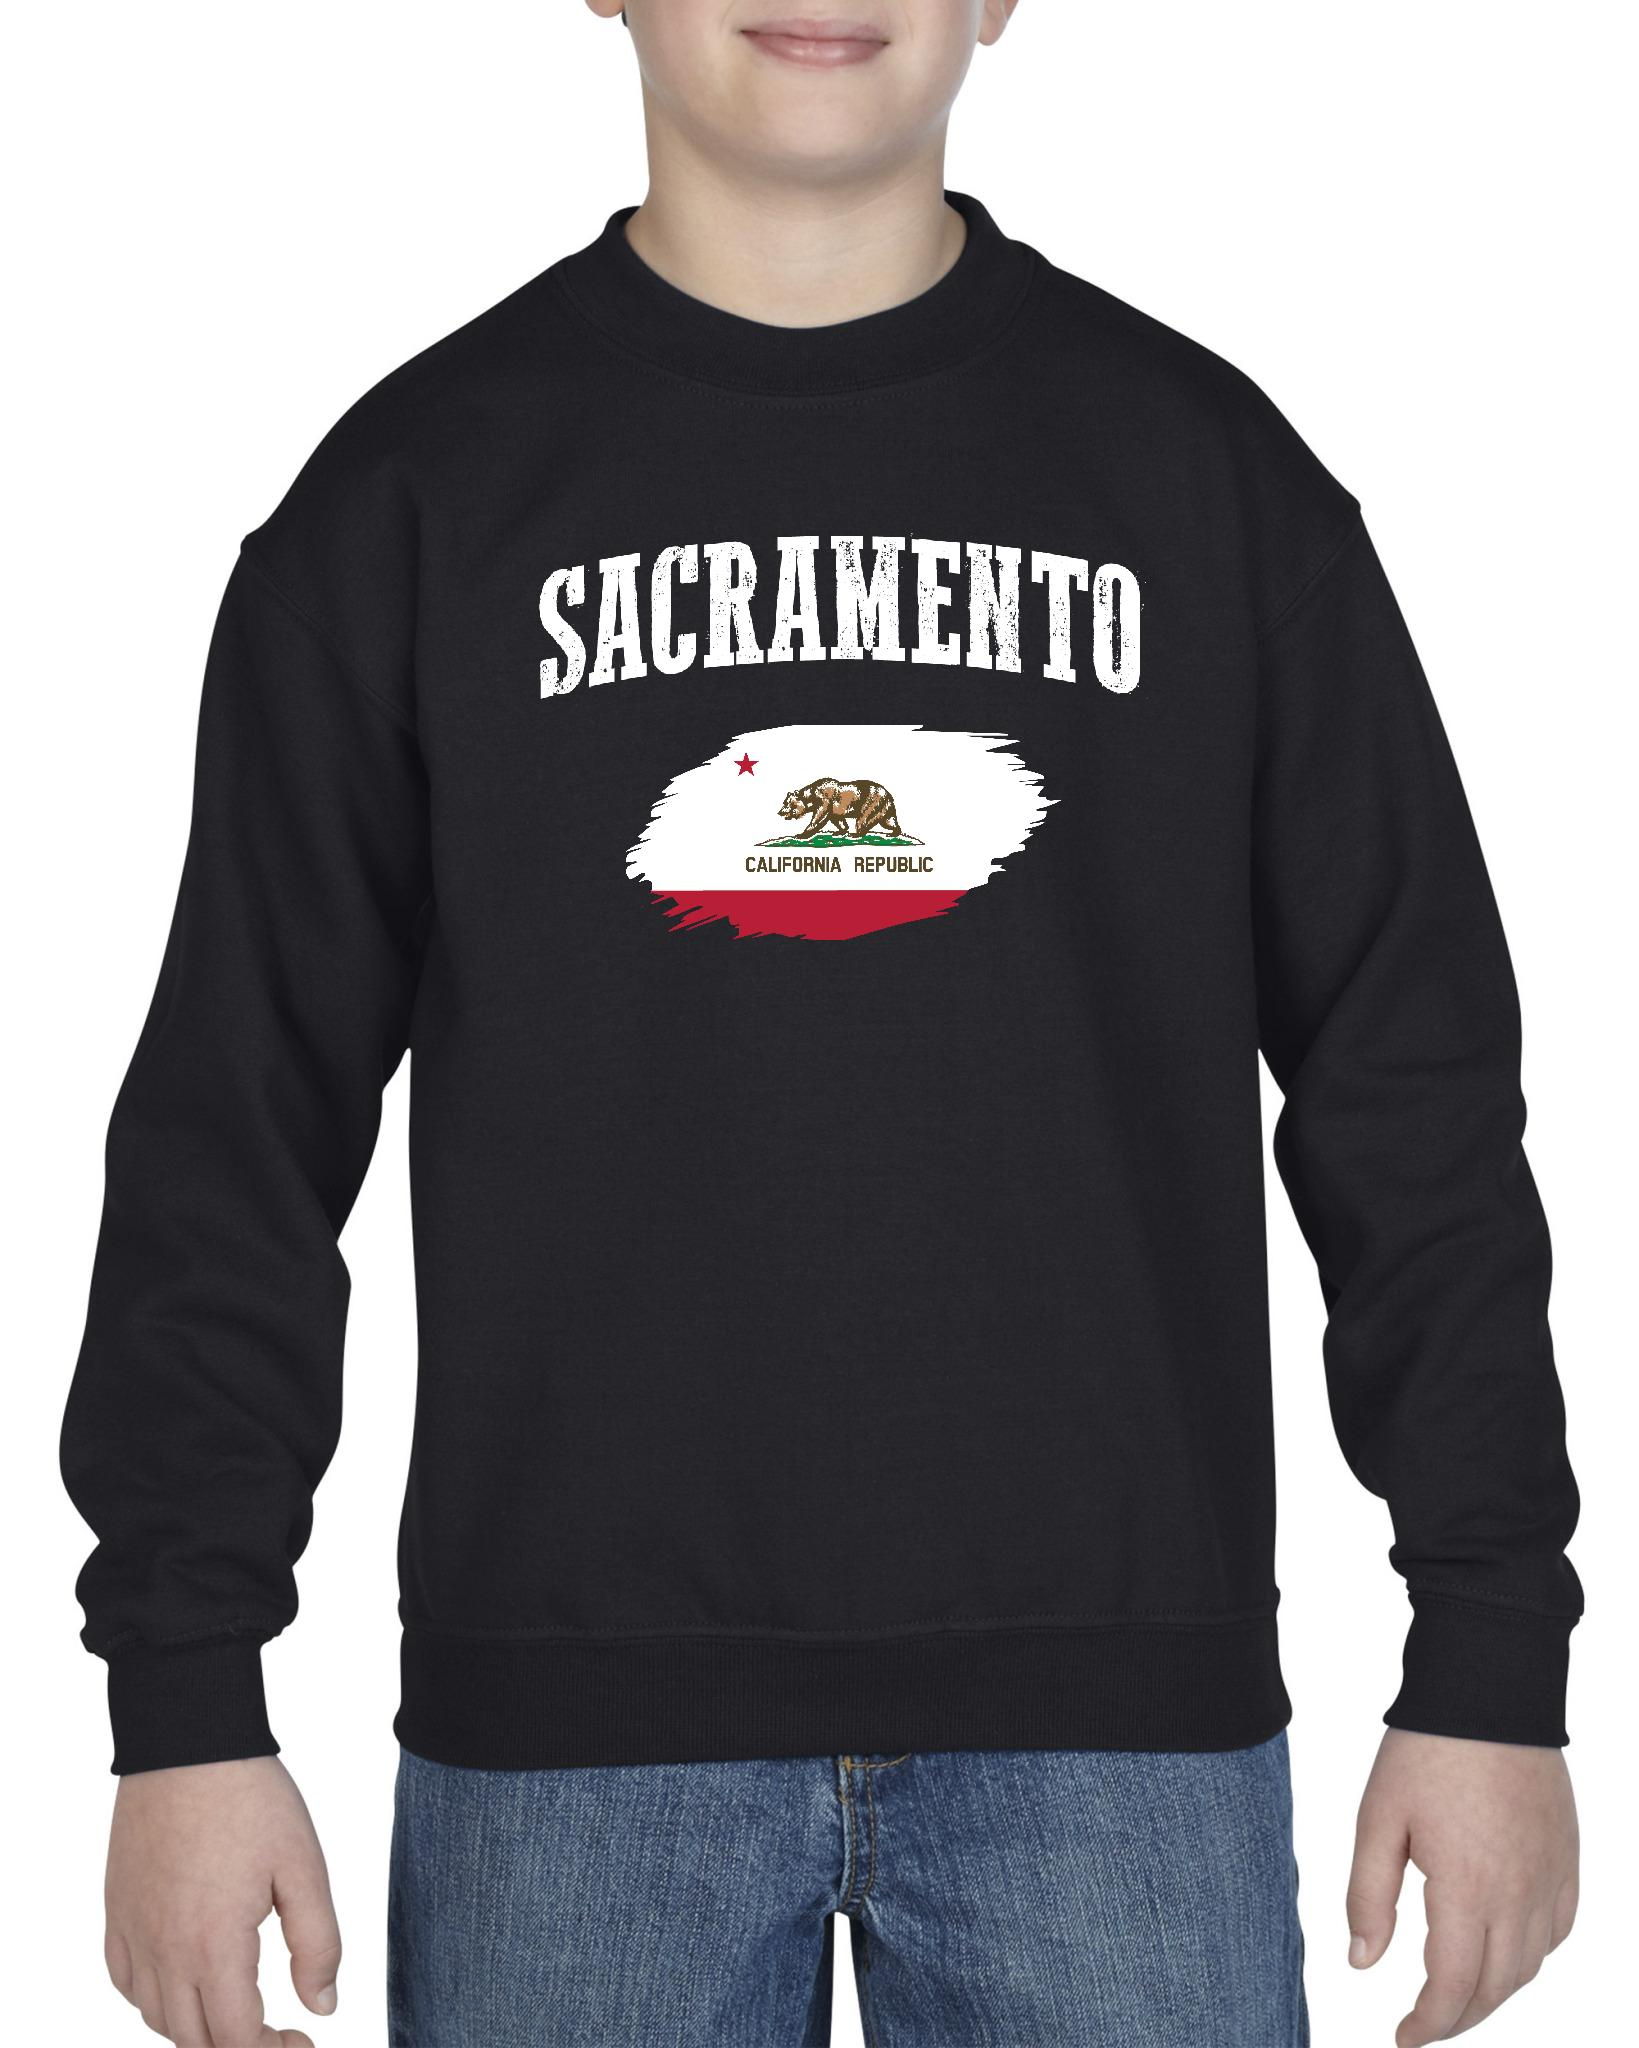 Sacramento California Youth Crewneck Sweatshirt